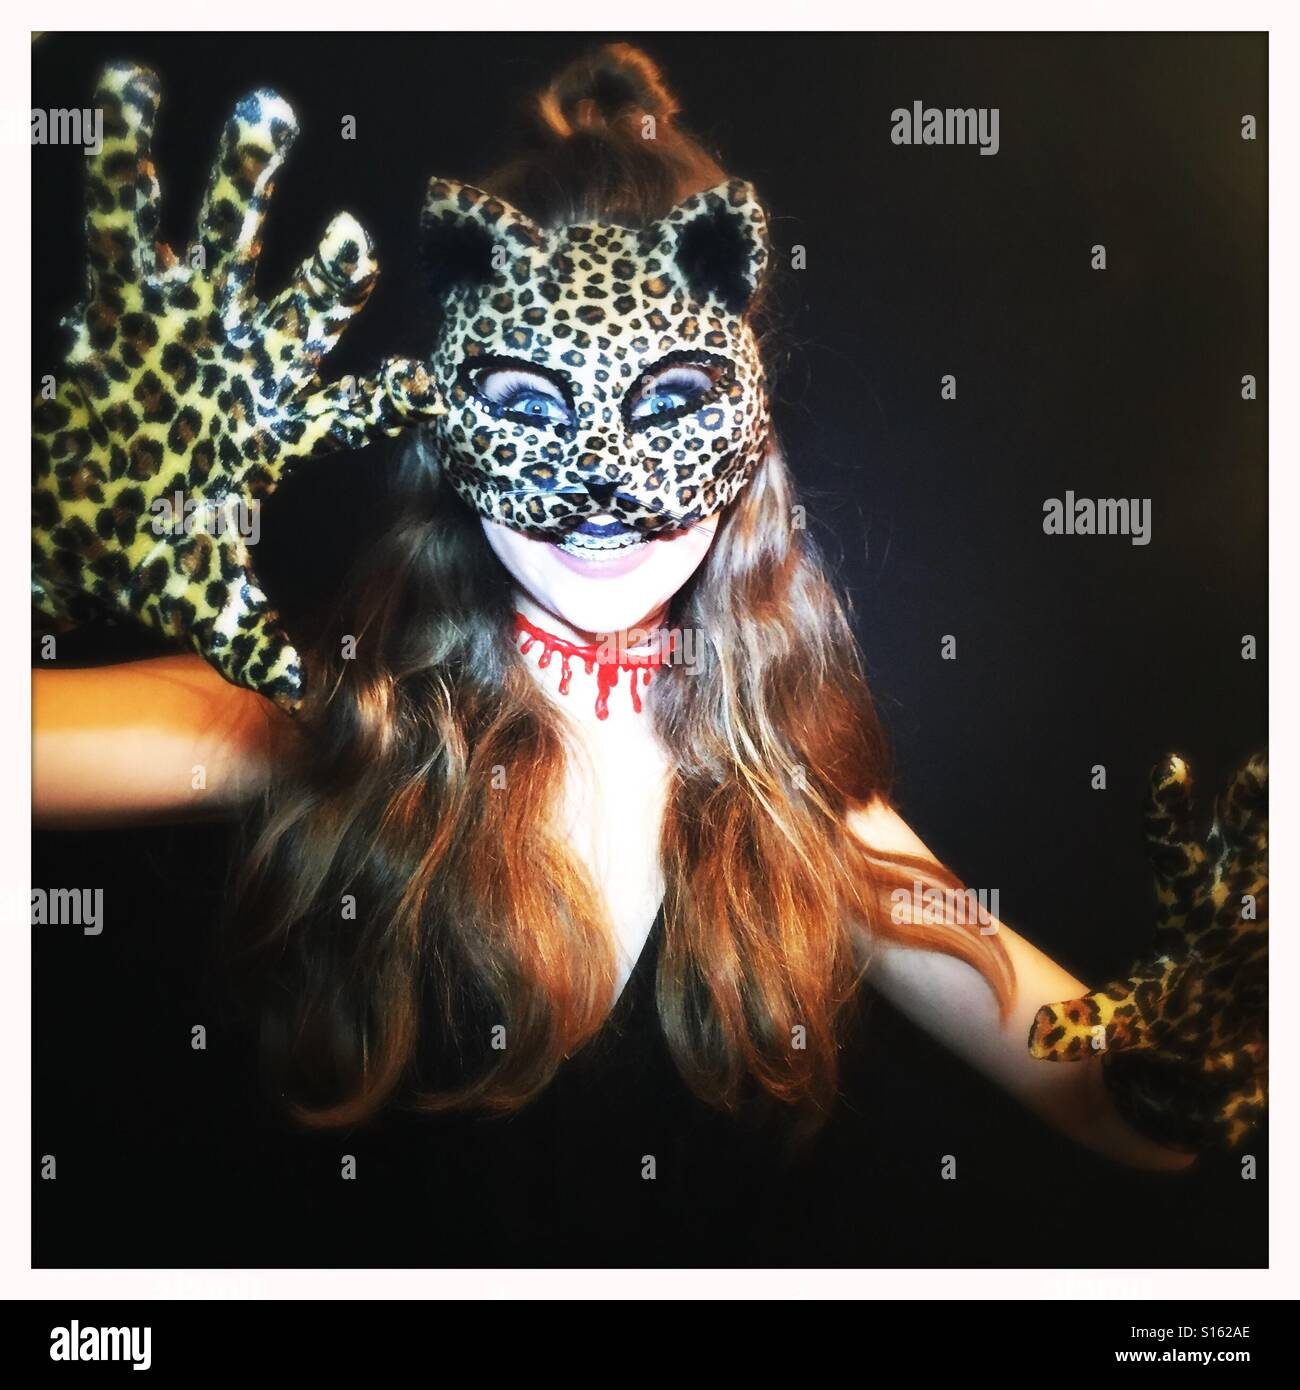 Cat Mask Stock Photos & Cat Mask Stock Images - Alamy